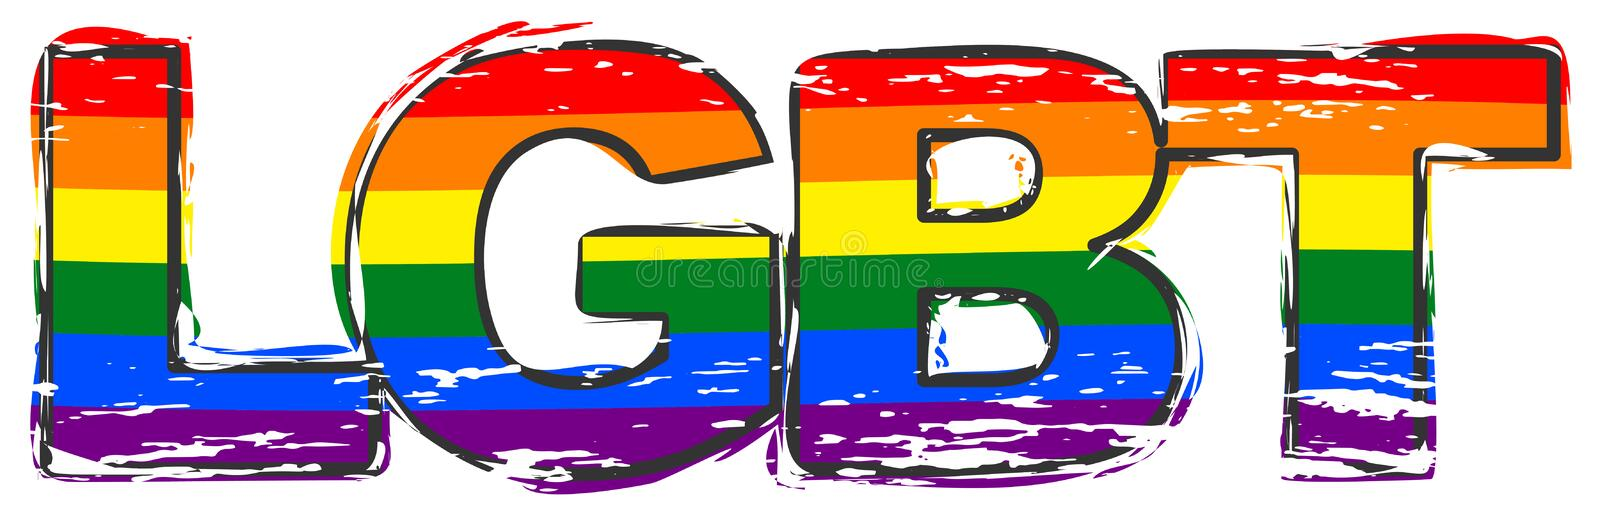 Word LGBT with rainbow pride flag under it, distressed grunge look royalty free illustration